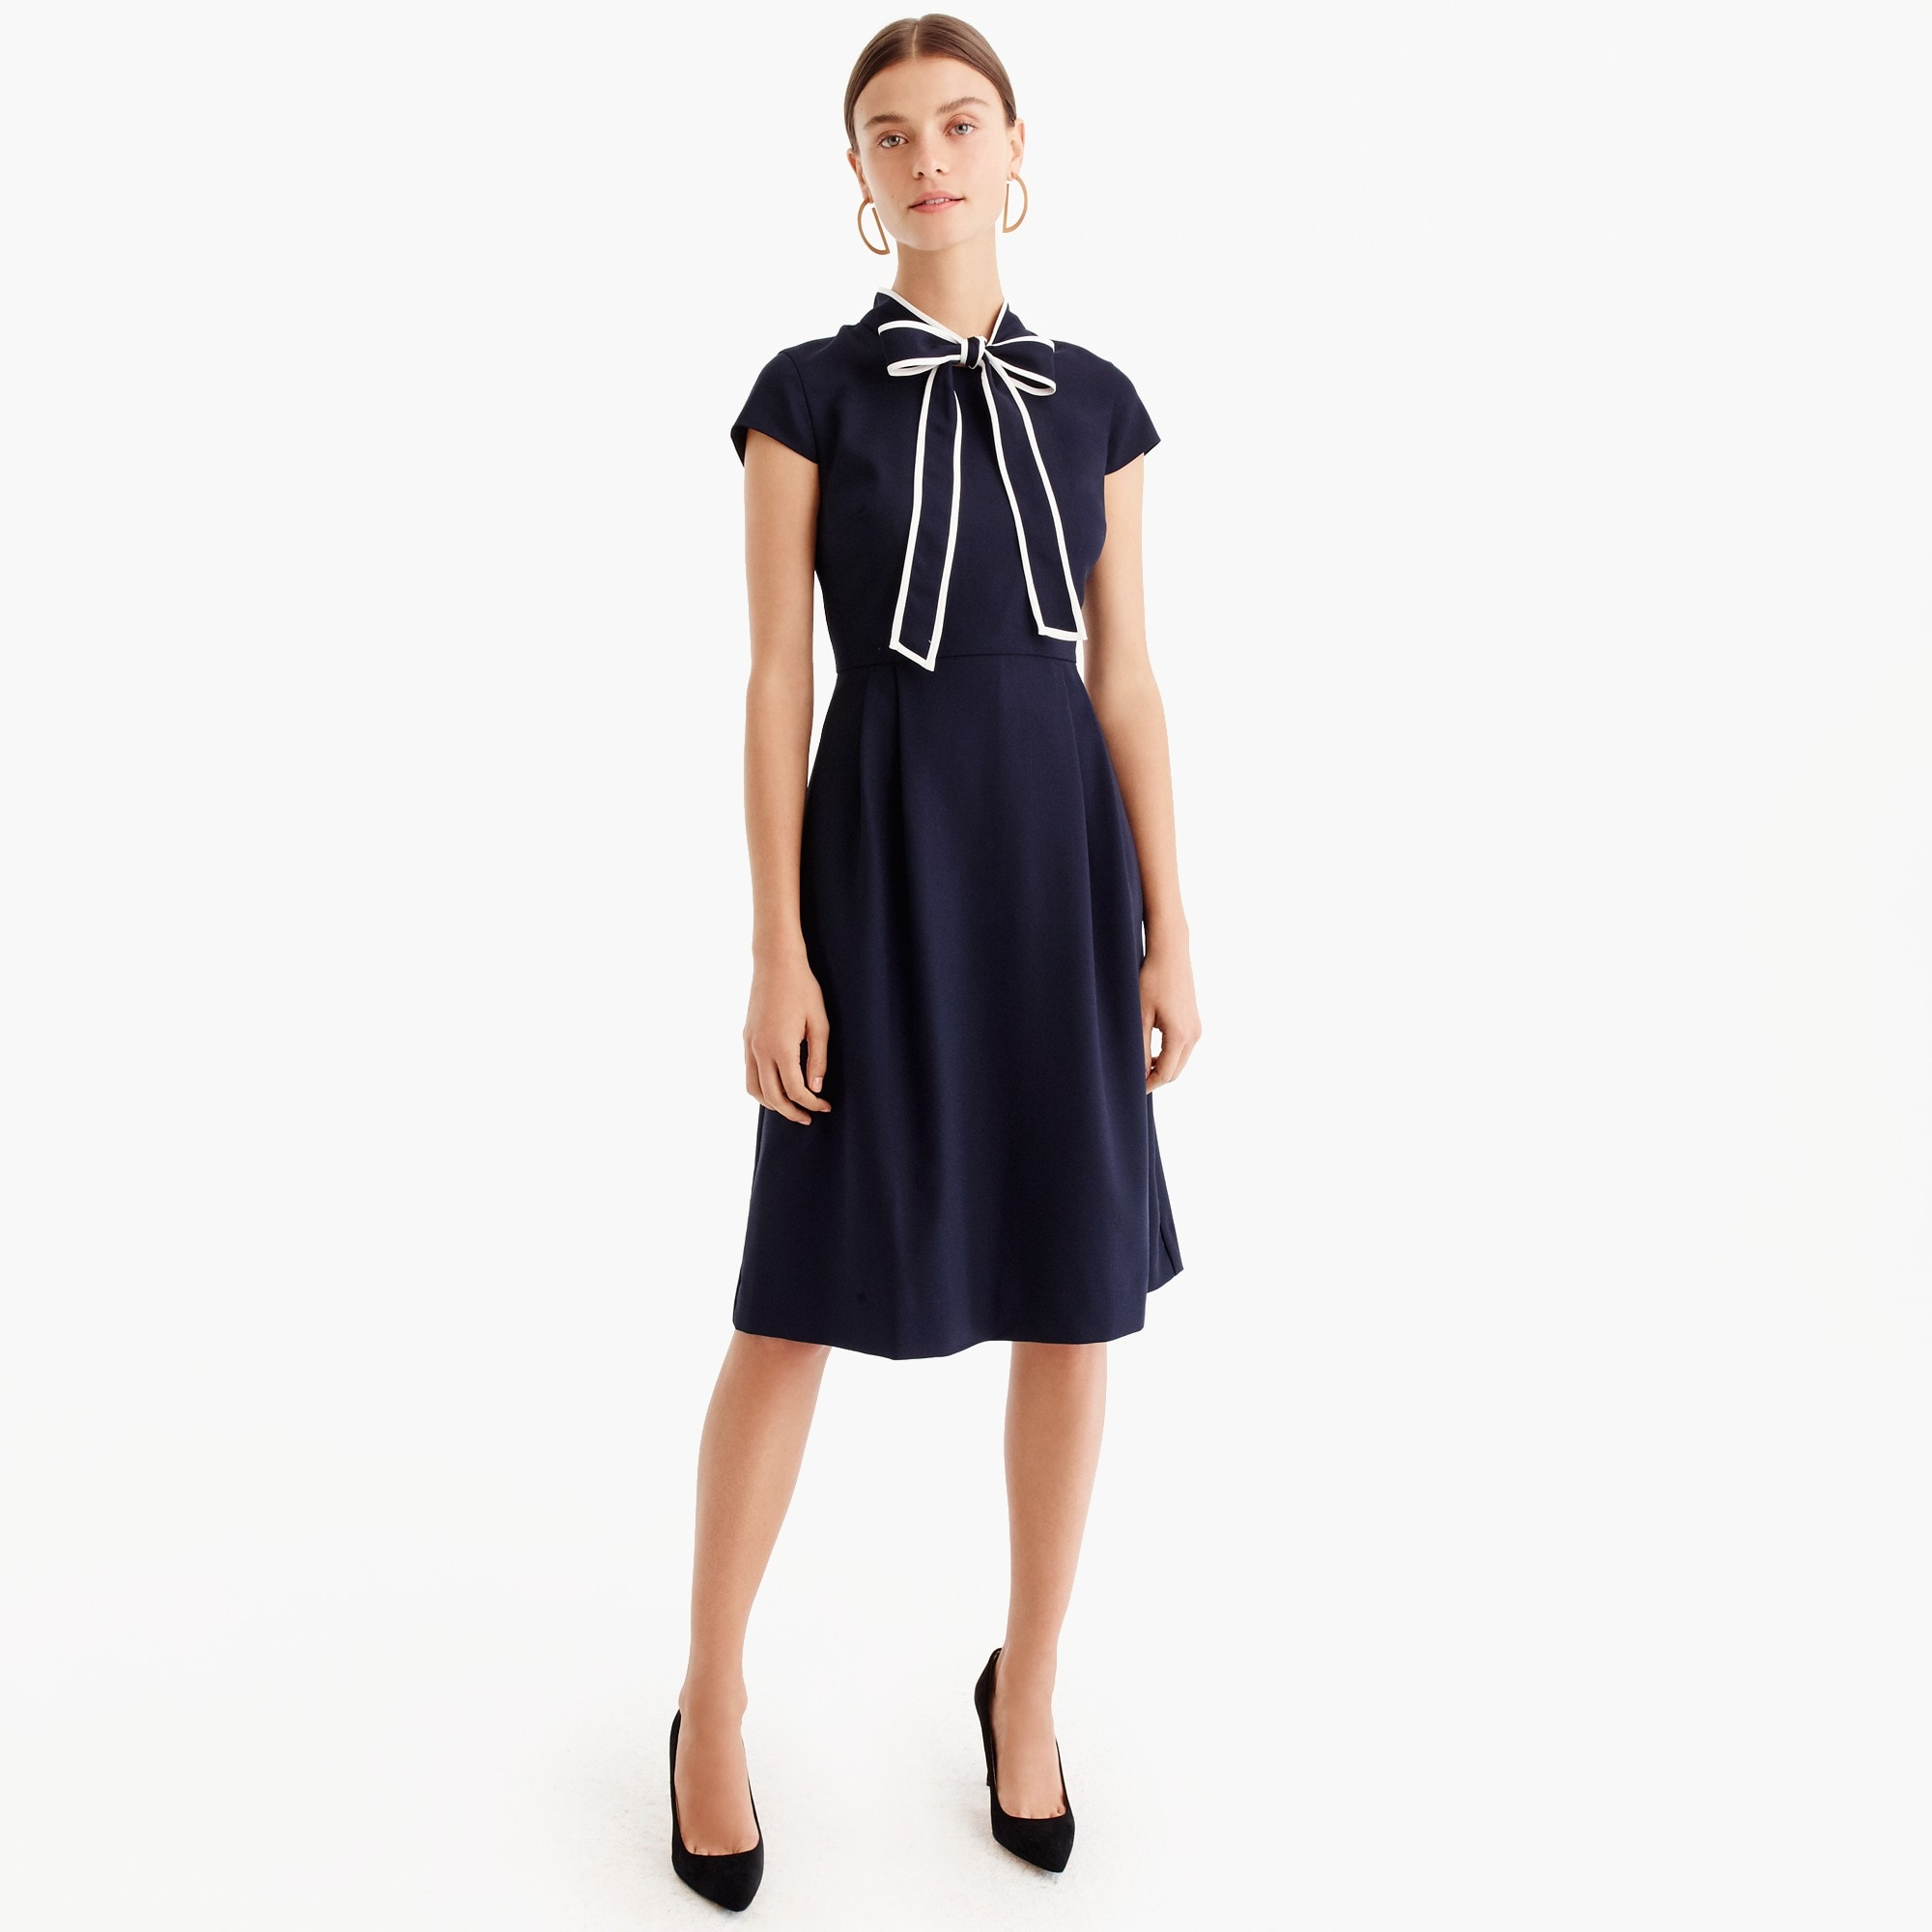 Petite tie-neck dress in Italian wool crepe women petite c